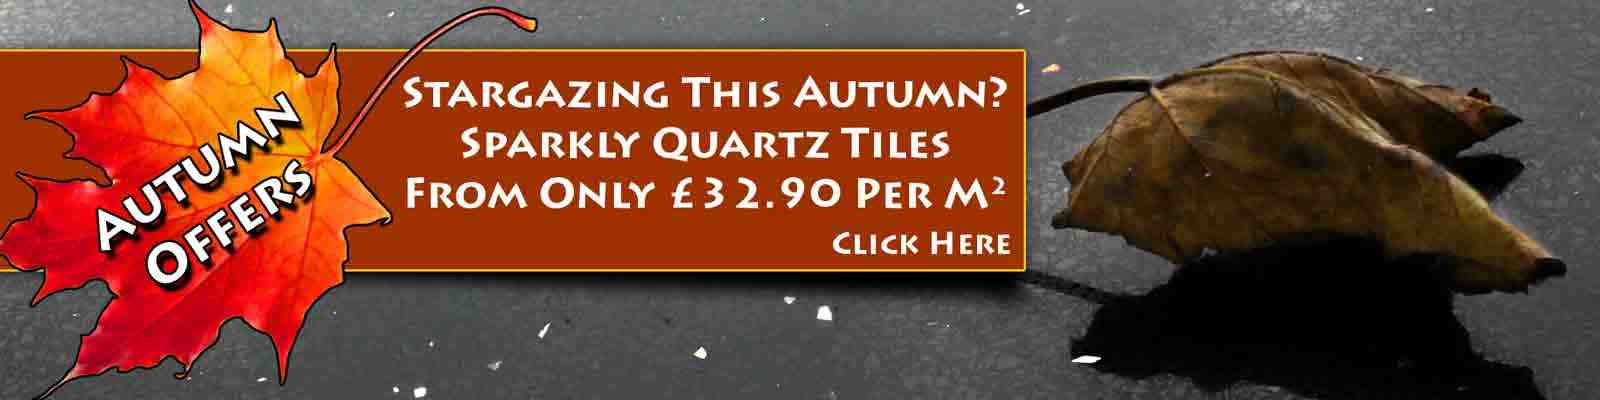 October Deals - Autumn Offers on Quartz Tiles